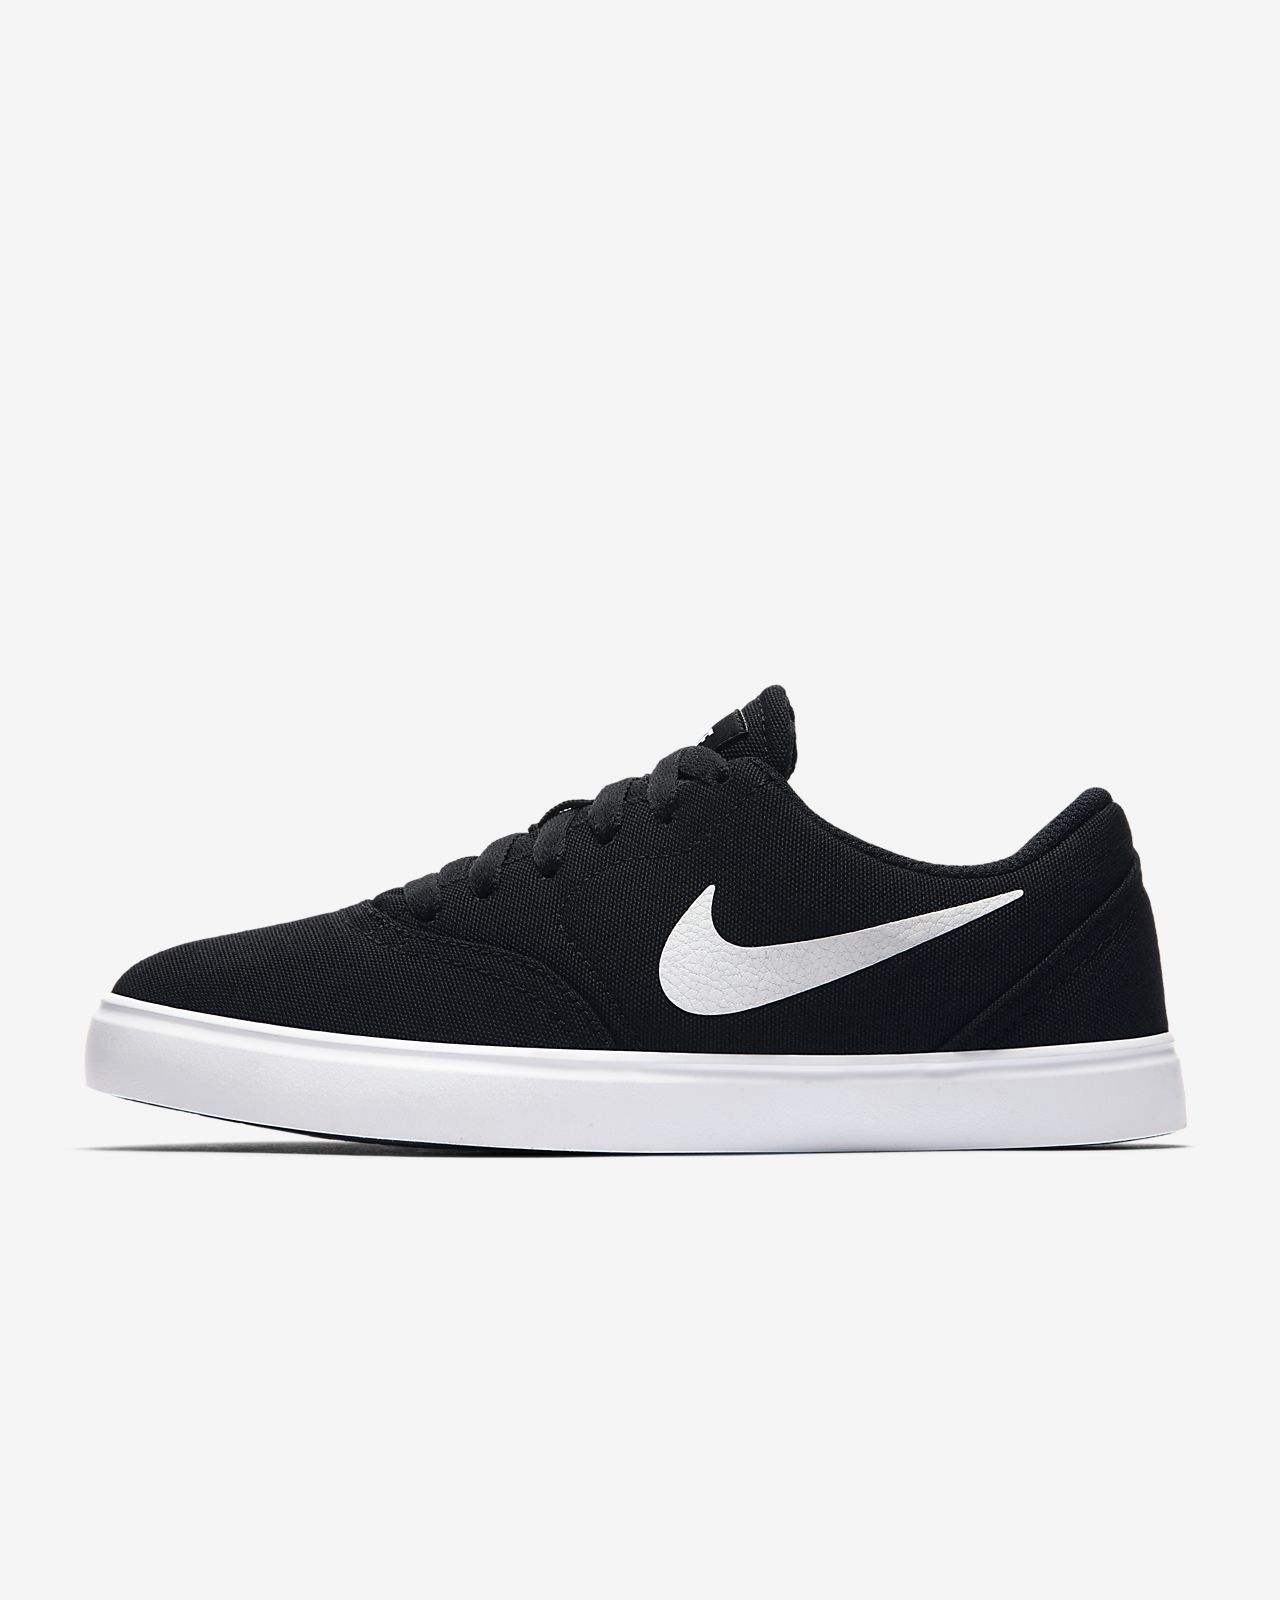 Sapatilhas de skateboard Nike SB Check Canvas Júnior